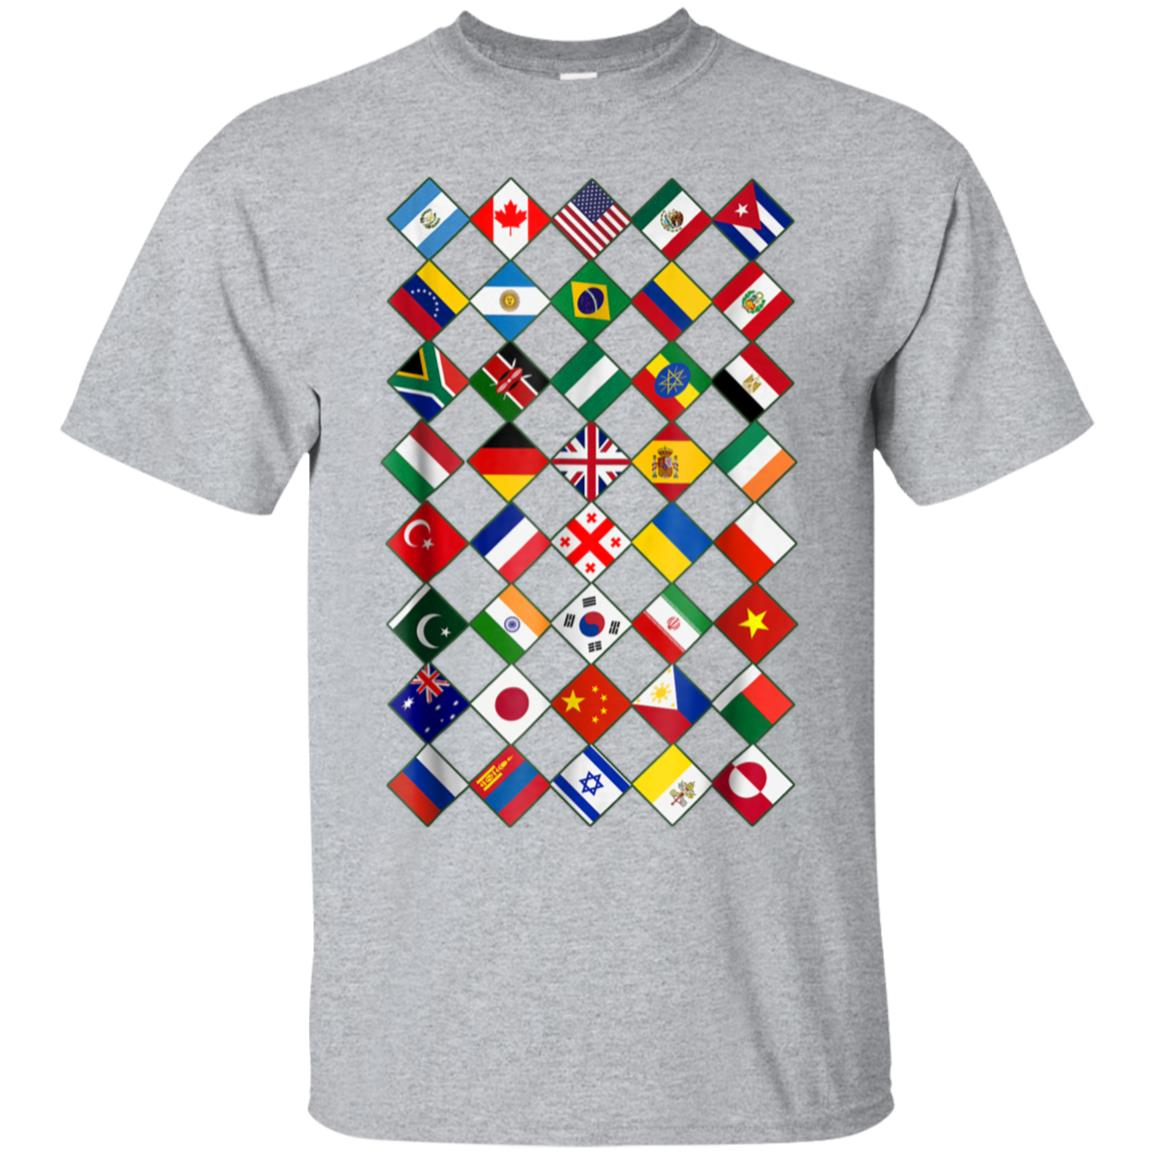 Flags of the Countries of the World,International Gift Shirt 99promocode